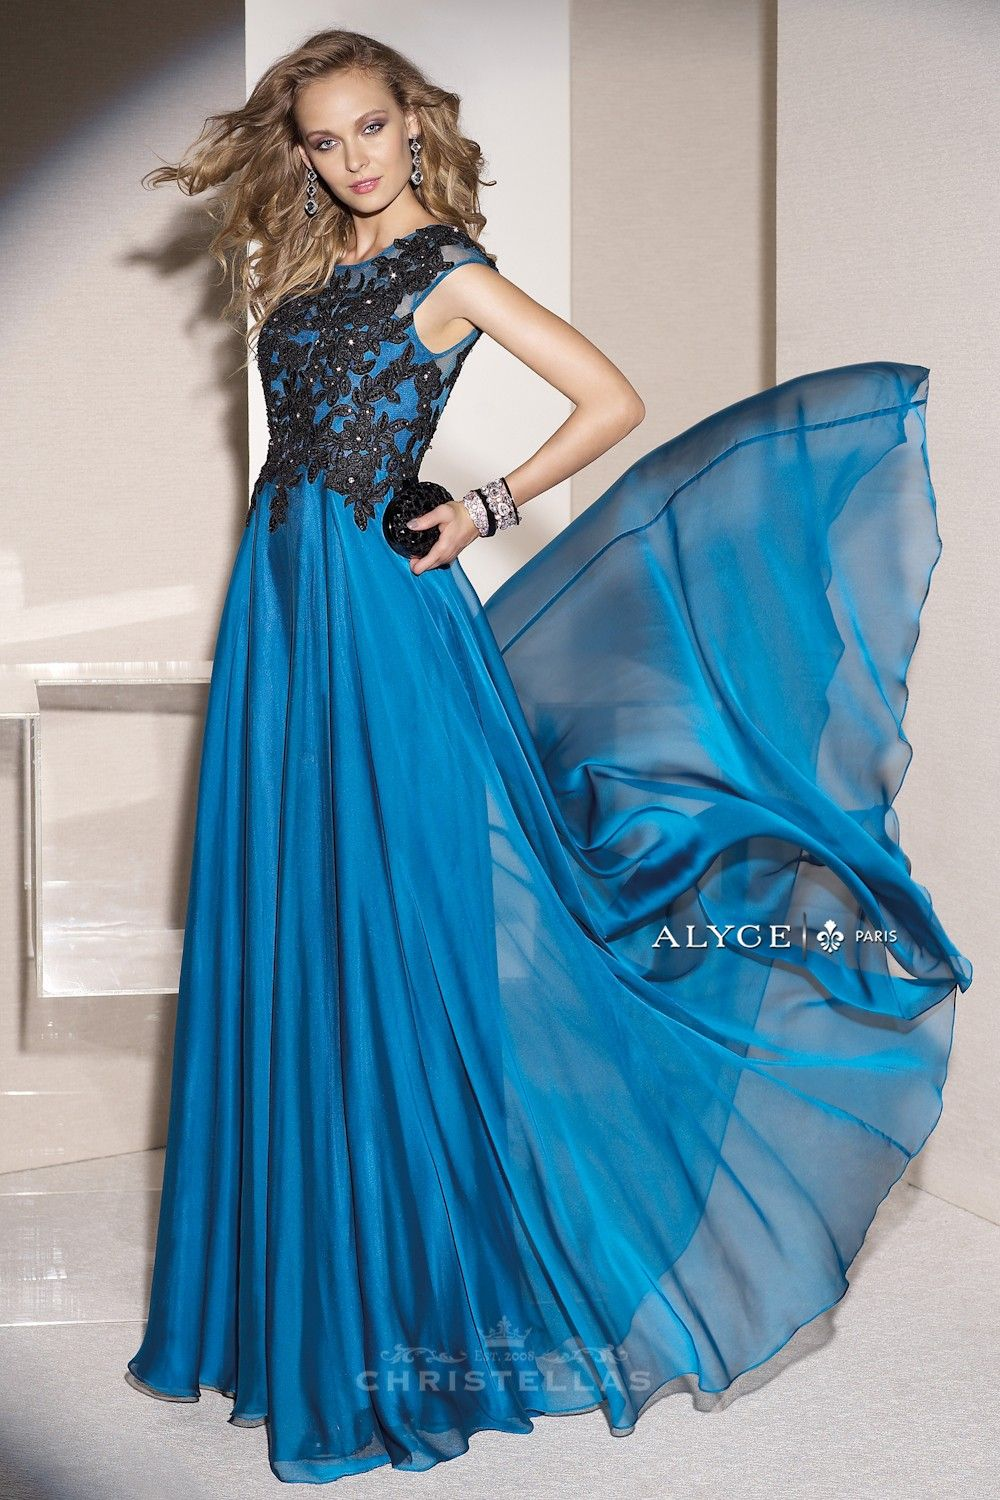 Lace appliqué and beading are radiant in this chiffon dress alyce